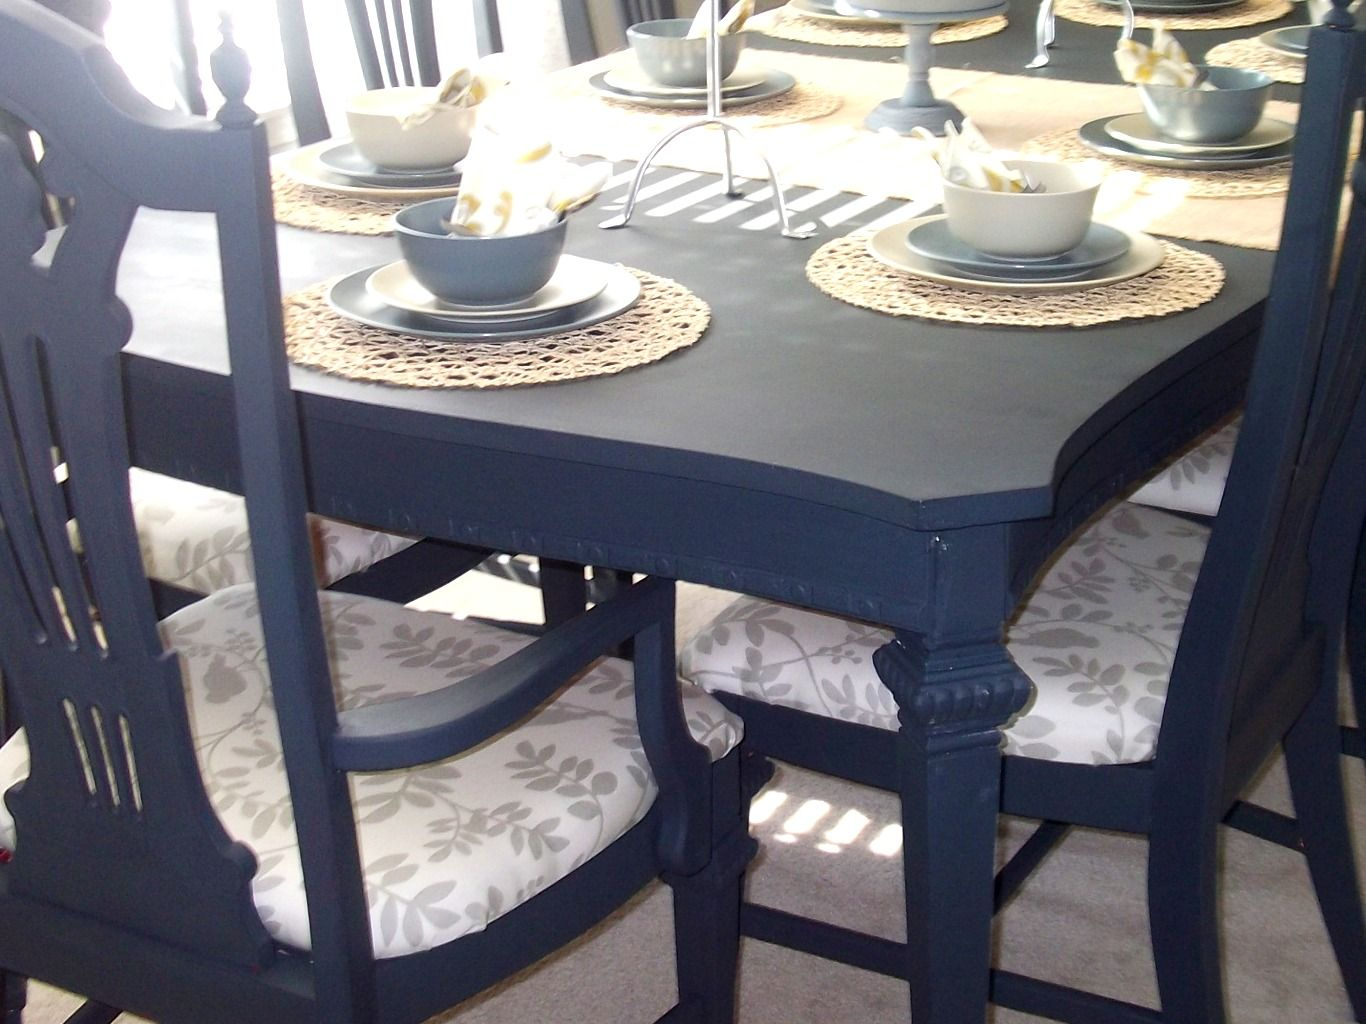 Marvelous Ideas For Painting Dining Room Table And Chairs Part - 8: Loving Life: Dining Room Table And Chairs Completed ~ Finally! - Home  Designs 2017